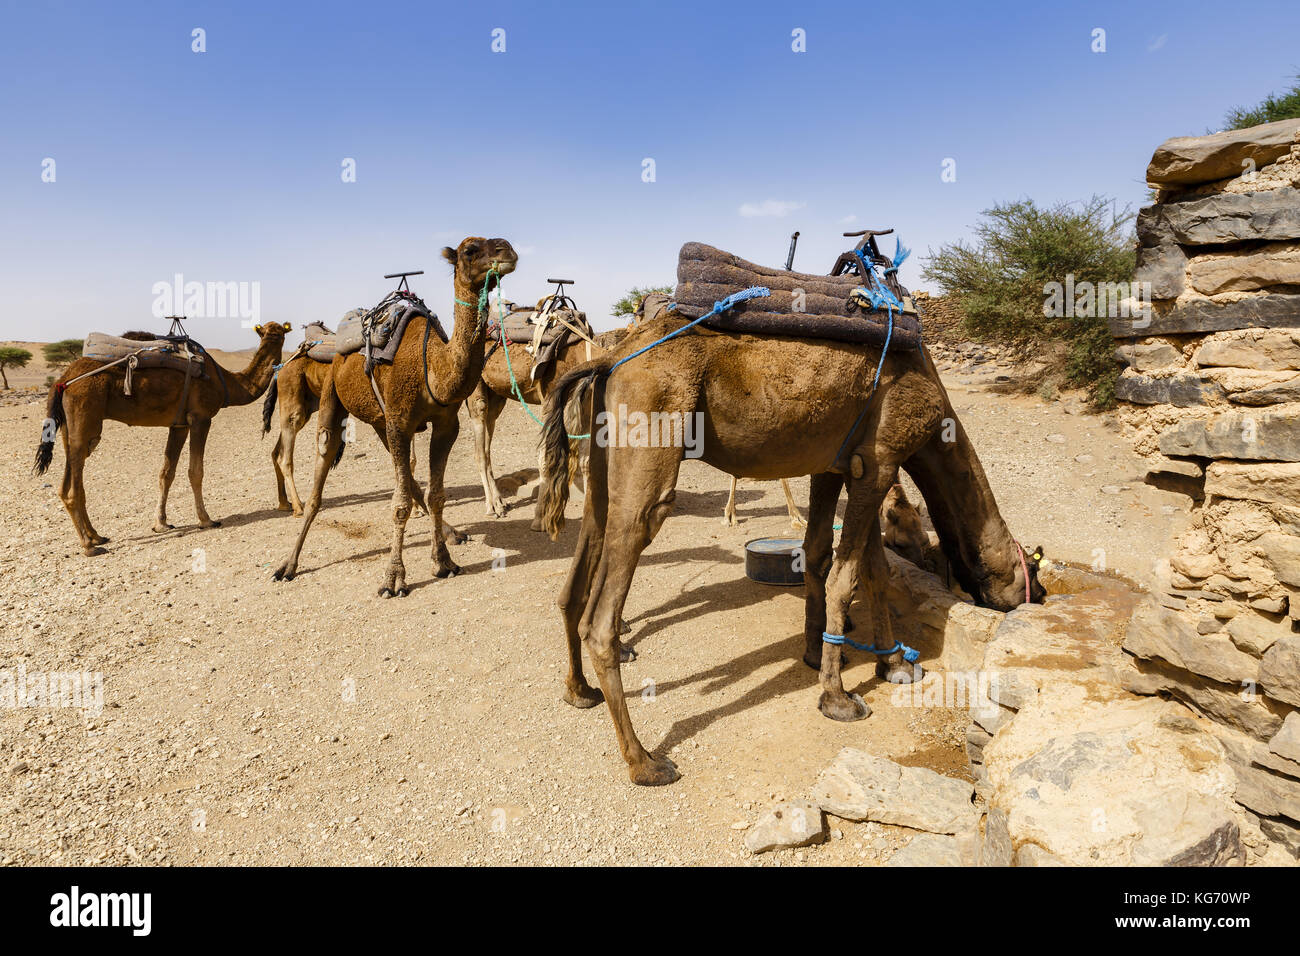 camels drink water - Stock Image